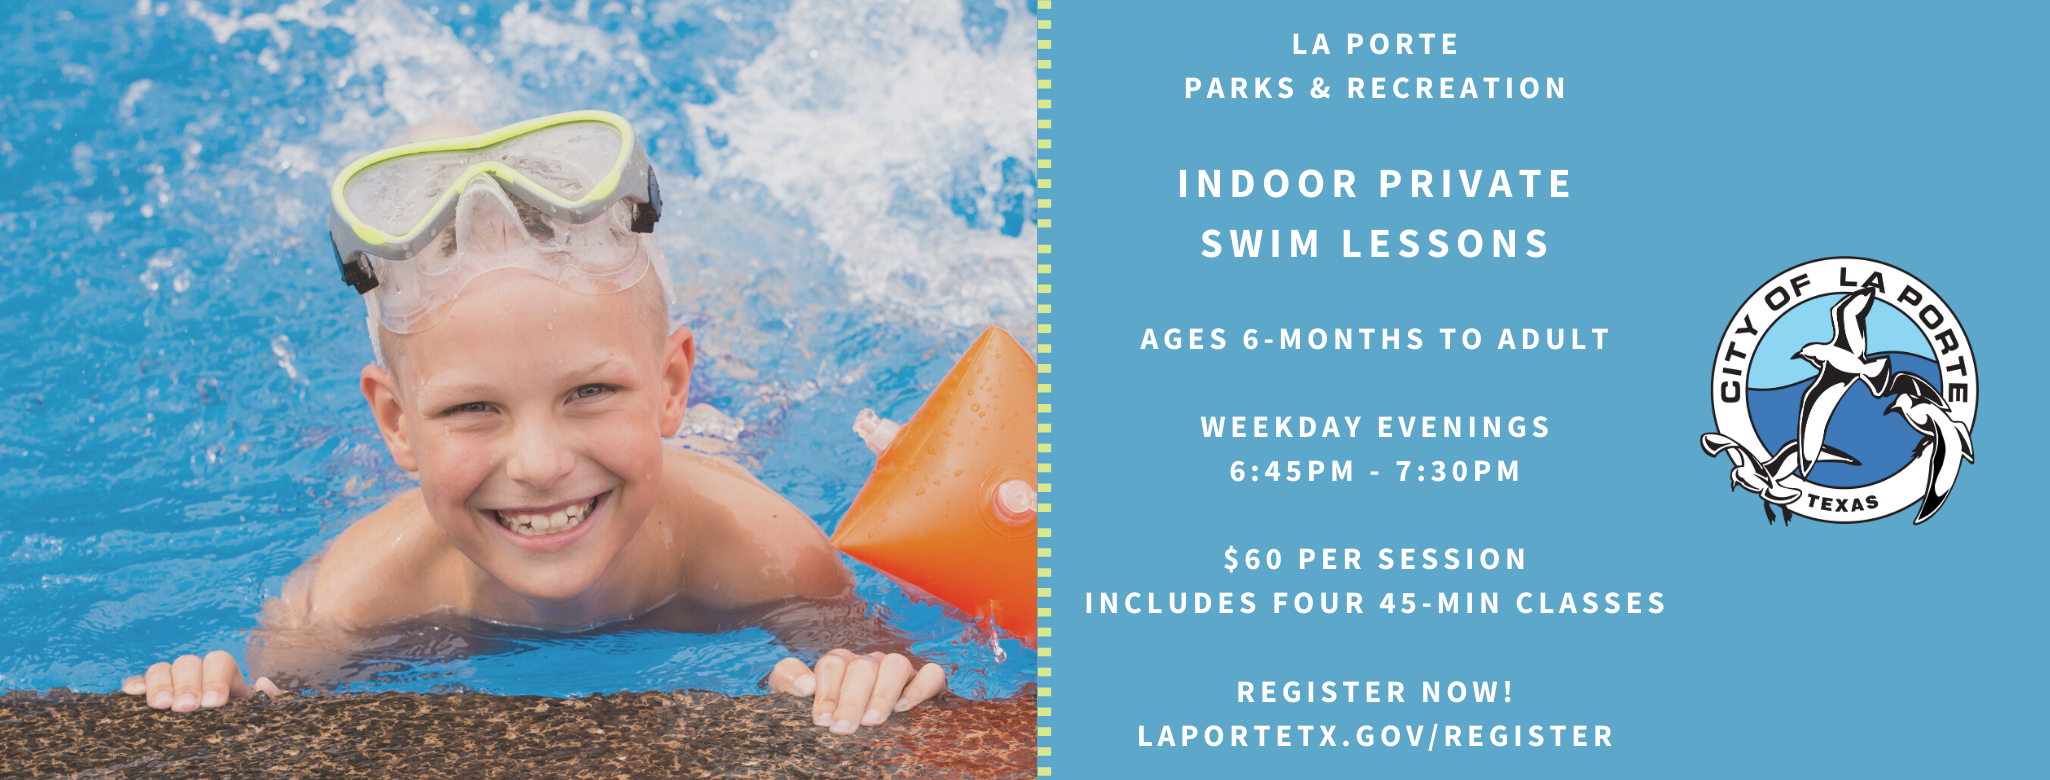 Indoor Private Swim Lessons Web Cover